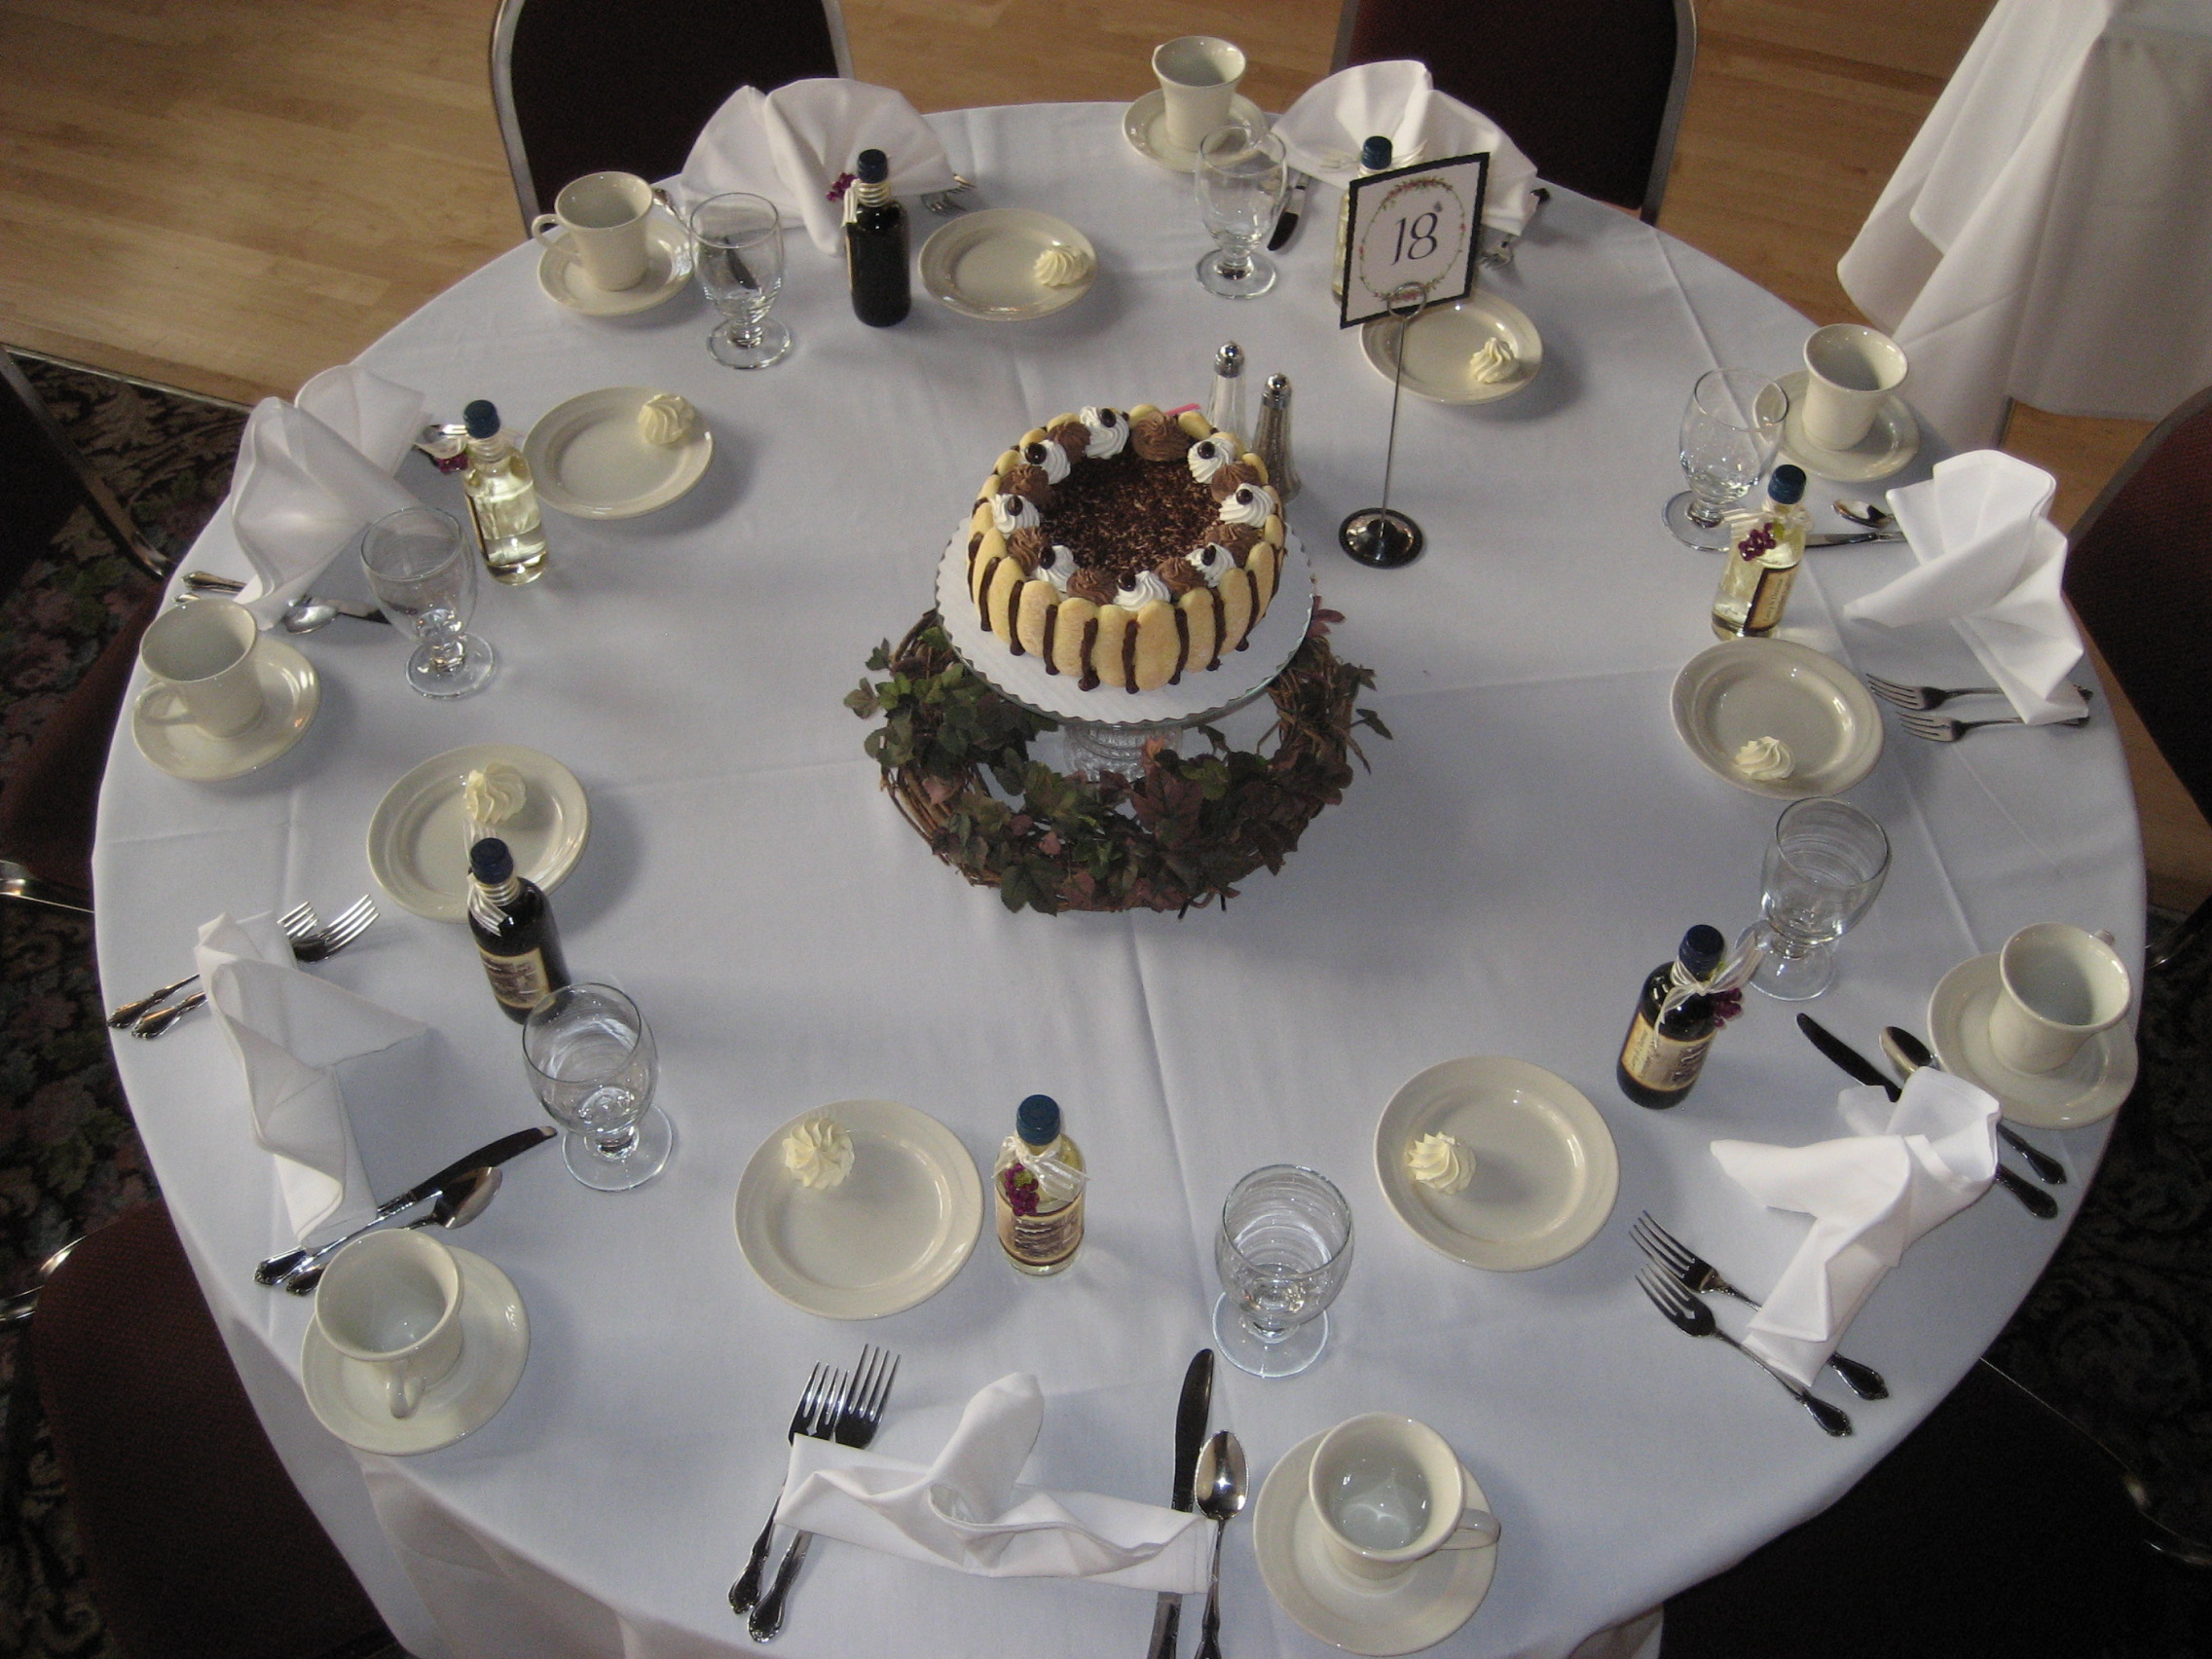 Cake Centerpieces For Weddings : Cake Centerpieces A Wedding Wish